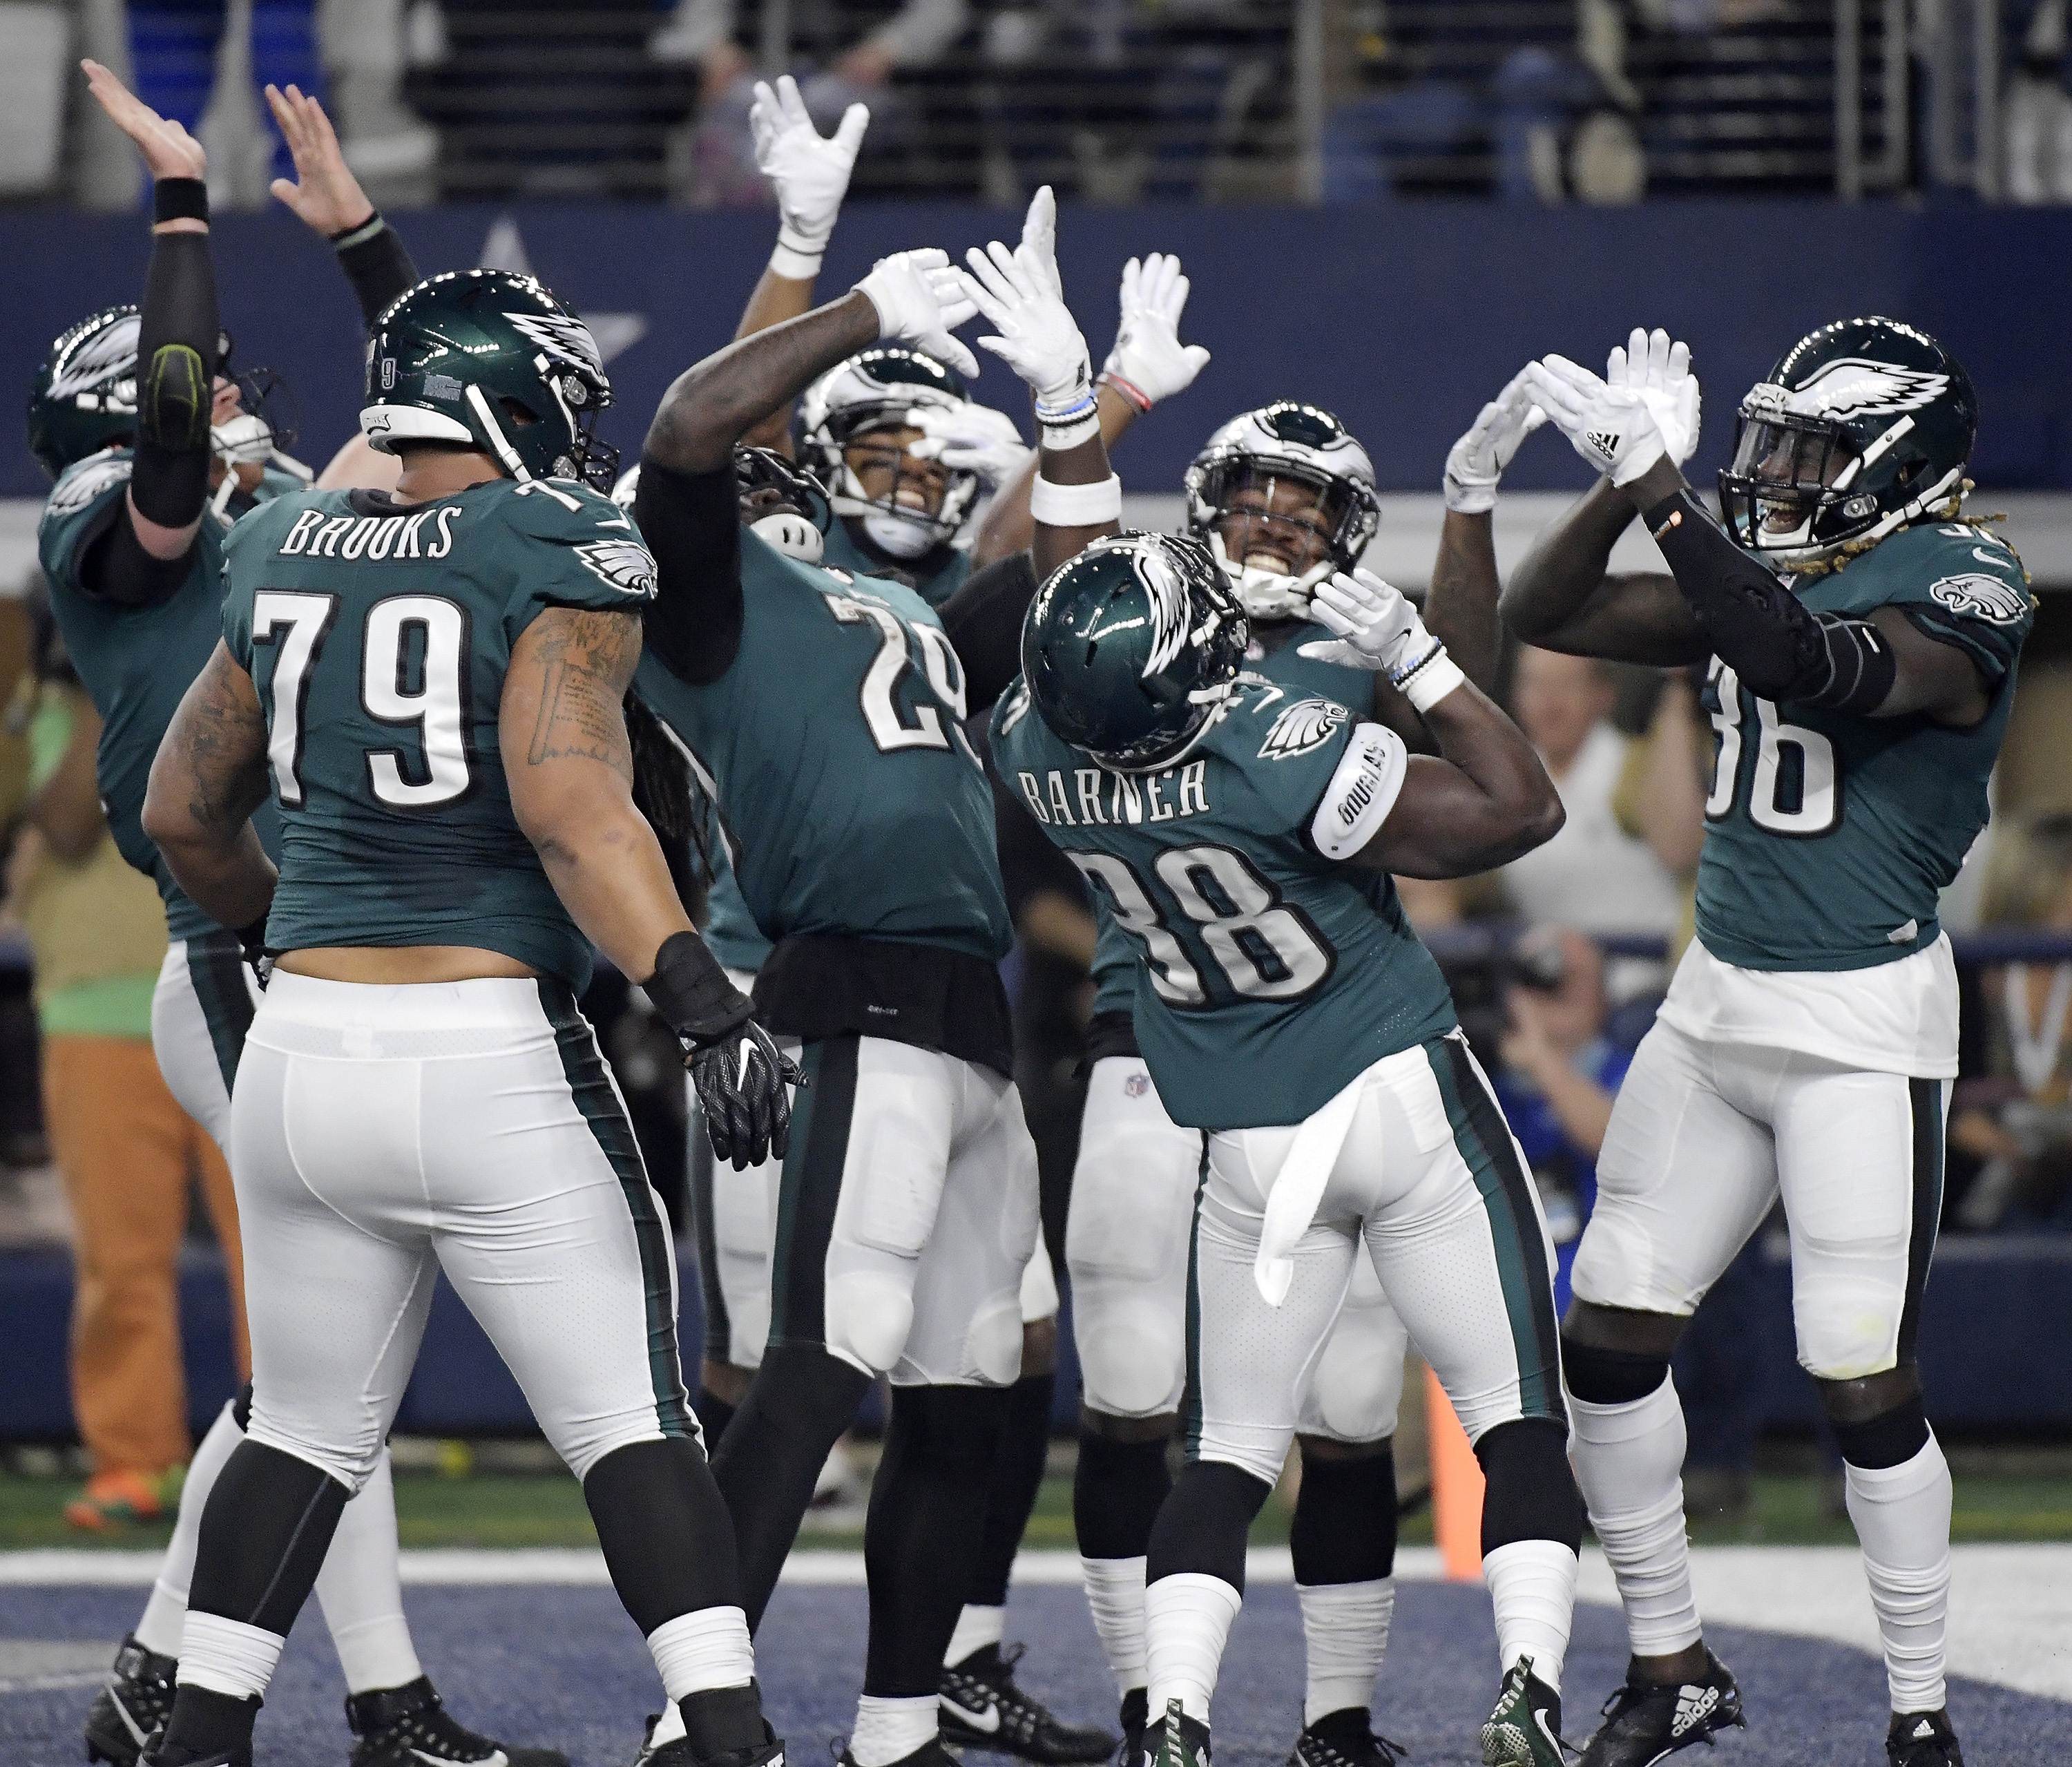 Eagles players celebrate a touchdown against the Cowboys.